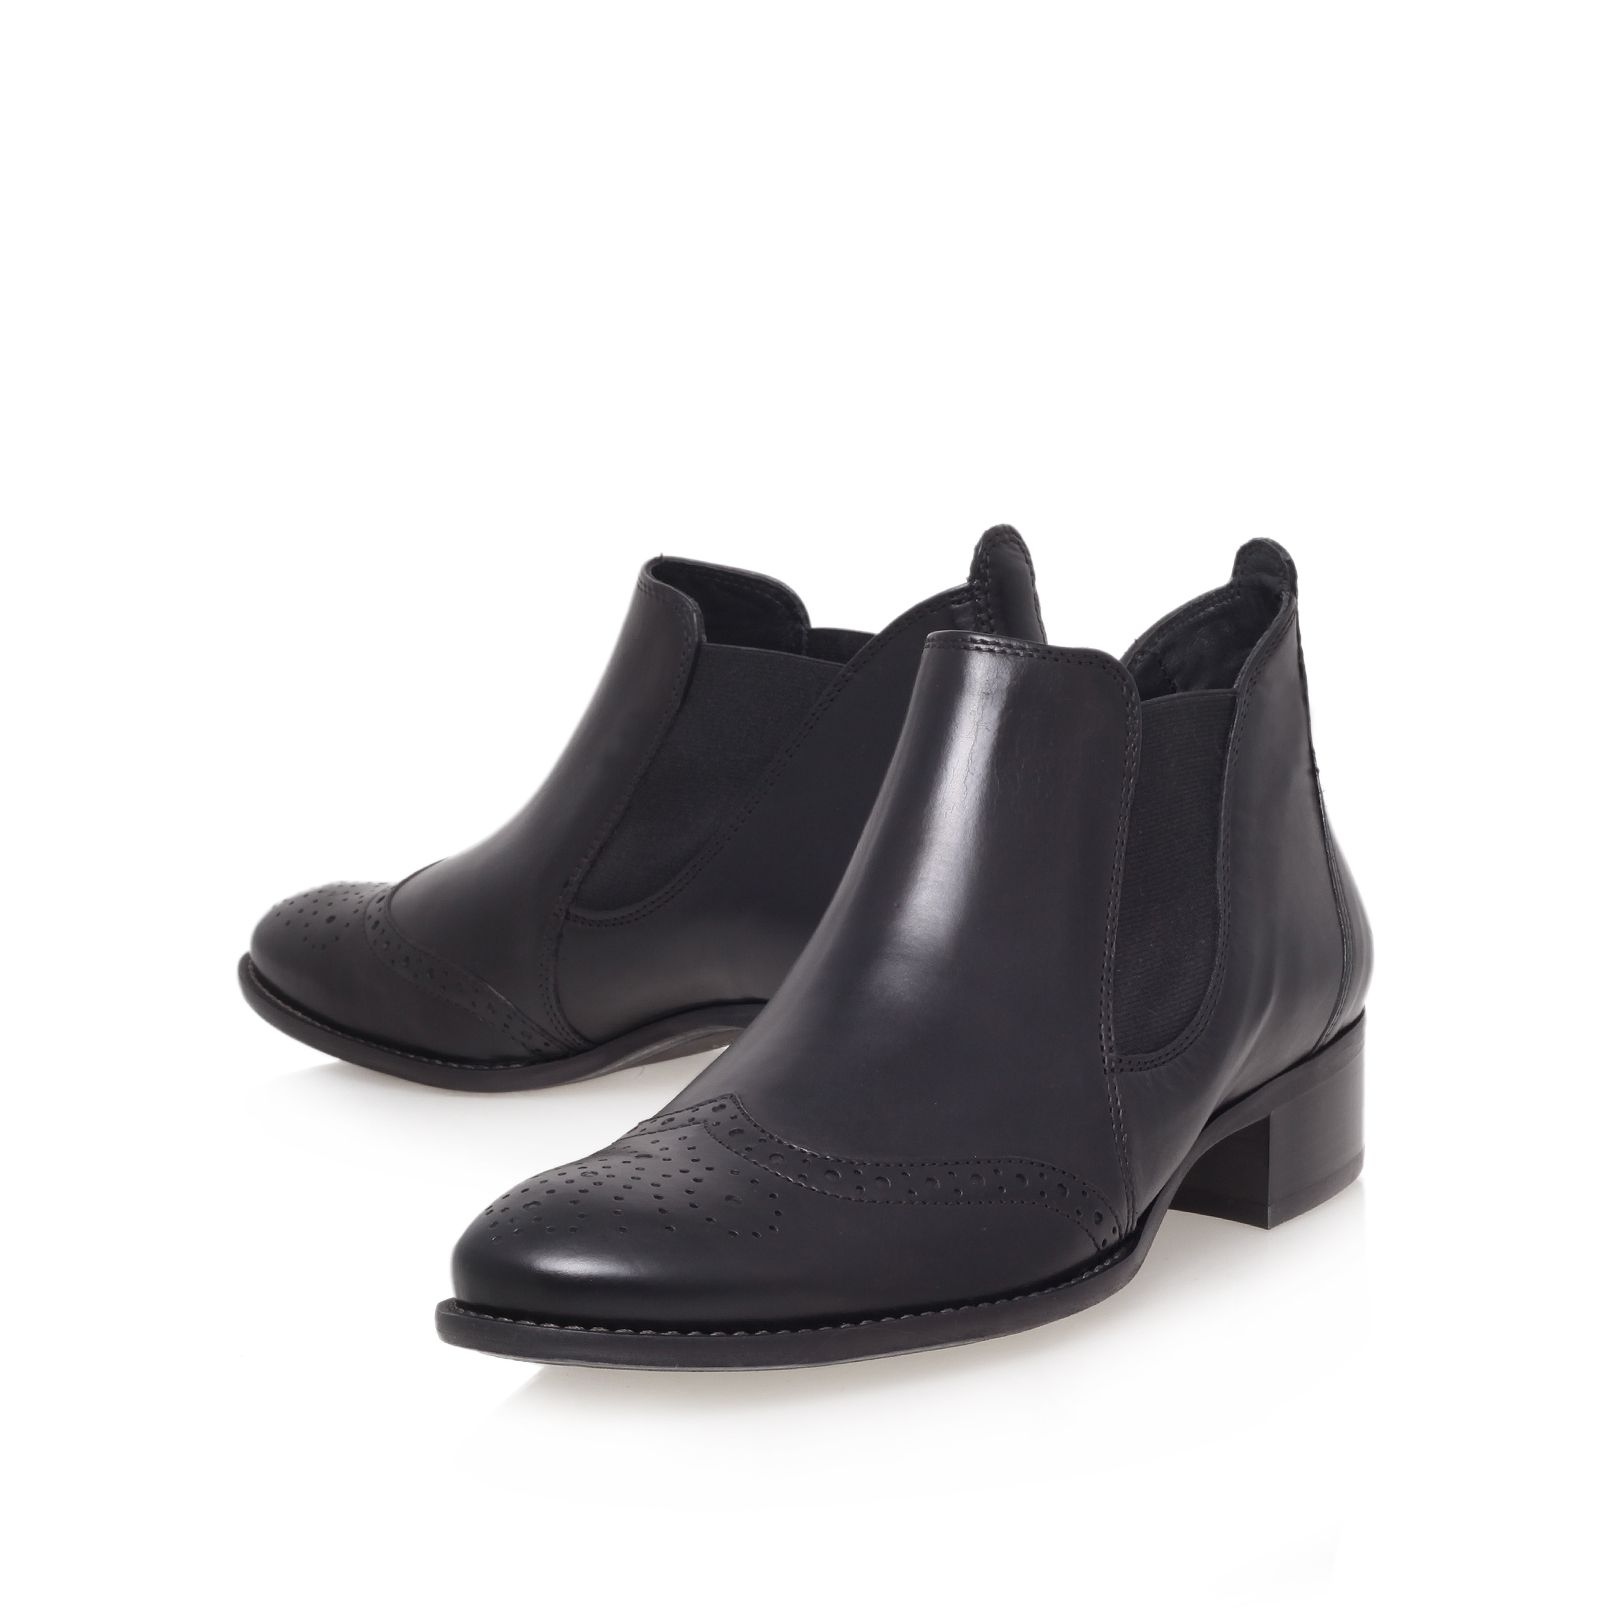 Carly ankle boots